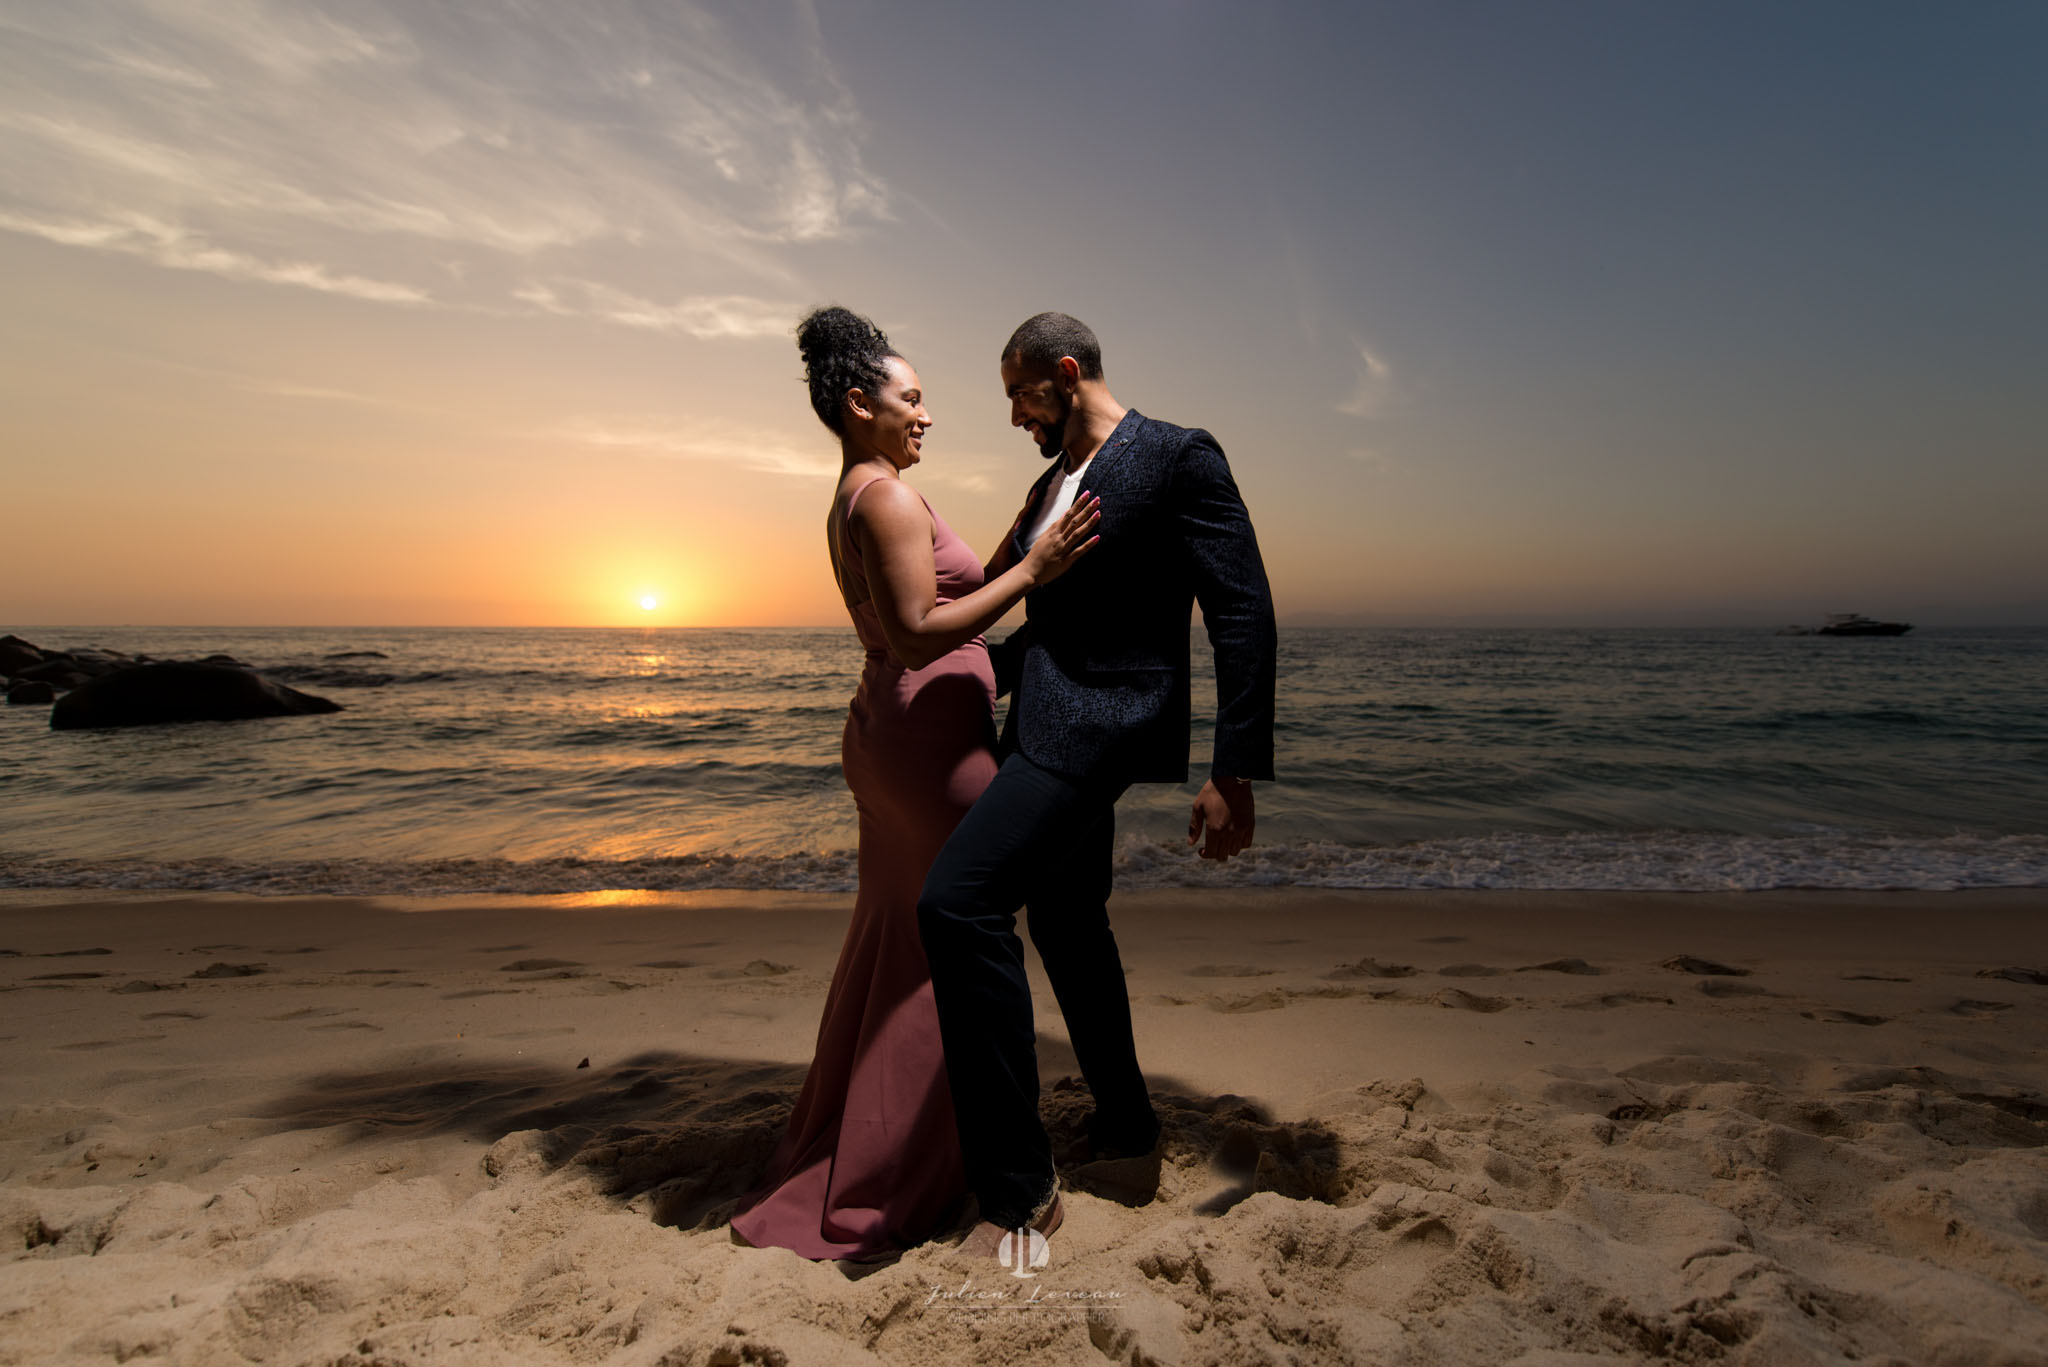 Engagement photo shoot in Puerto Vallarta - South Shore